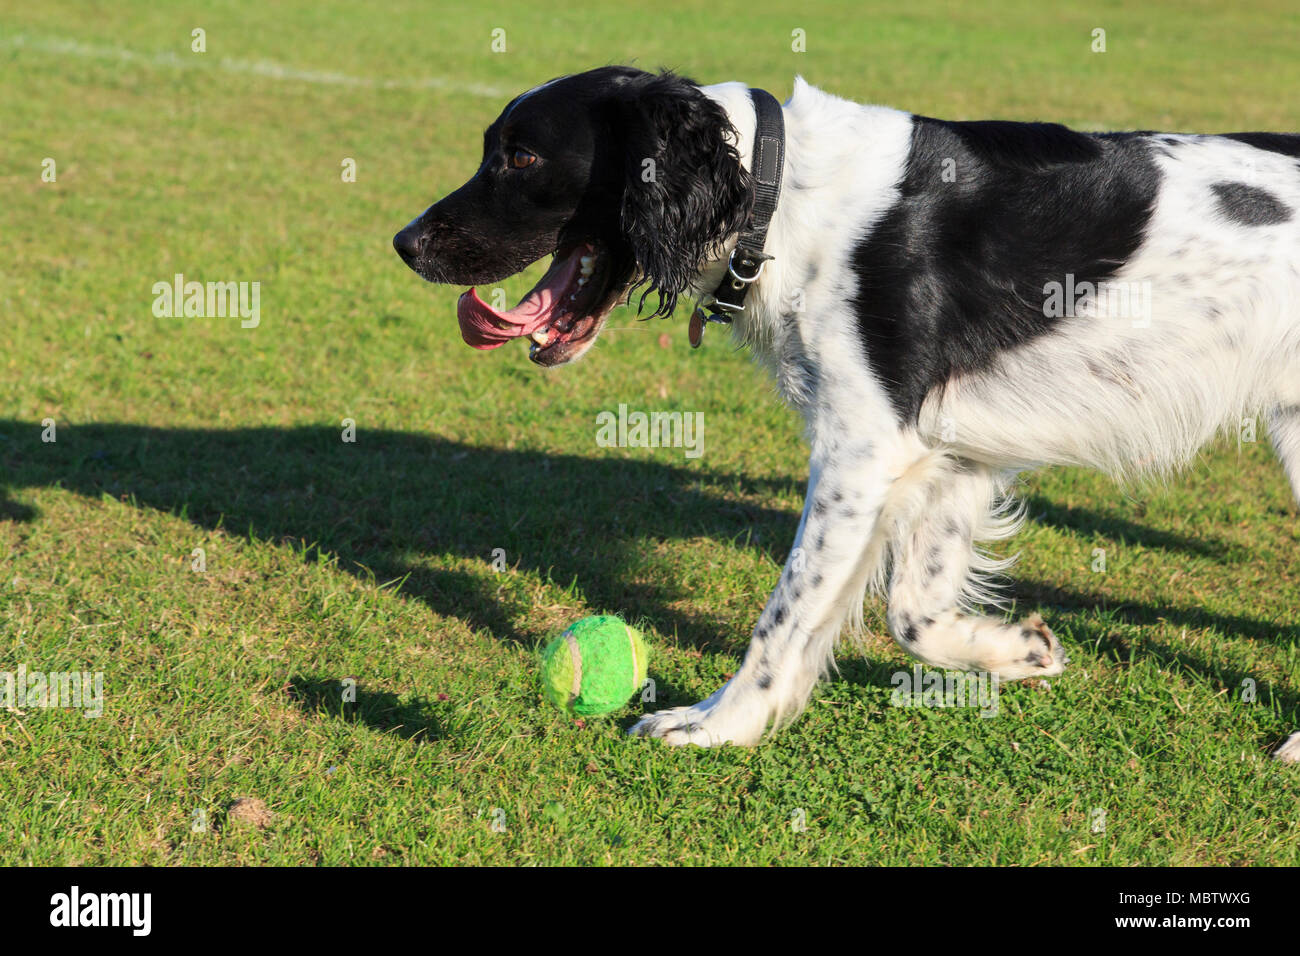 Black and White English Springer Spaniel (Canis lupus familiaris) dog dropping a ball from its mouth so it can be thrown outside in a park. England UK - Stock Image